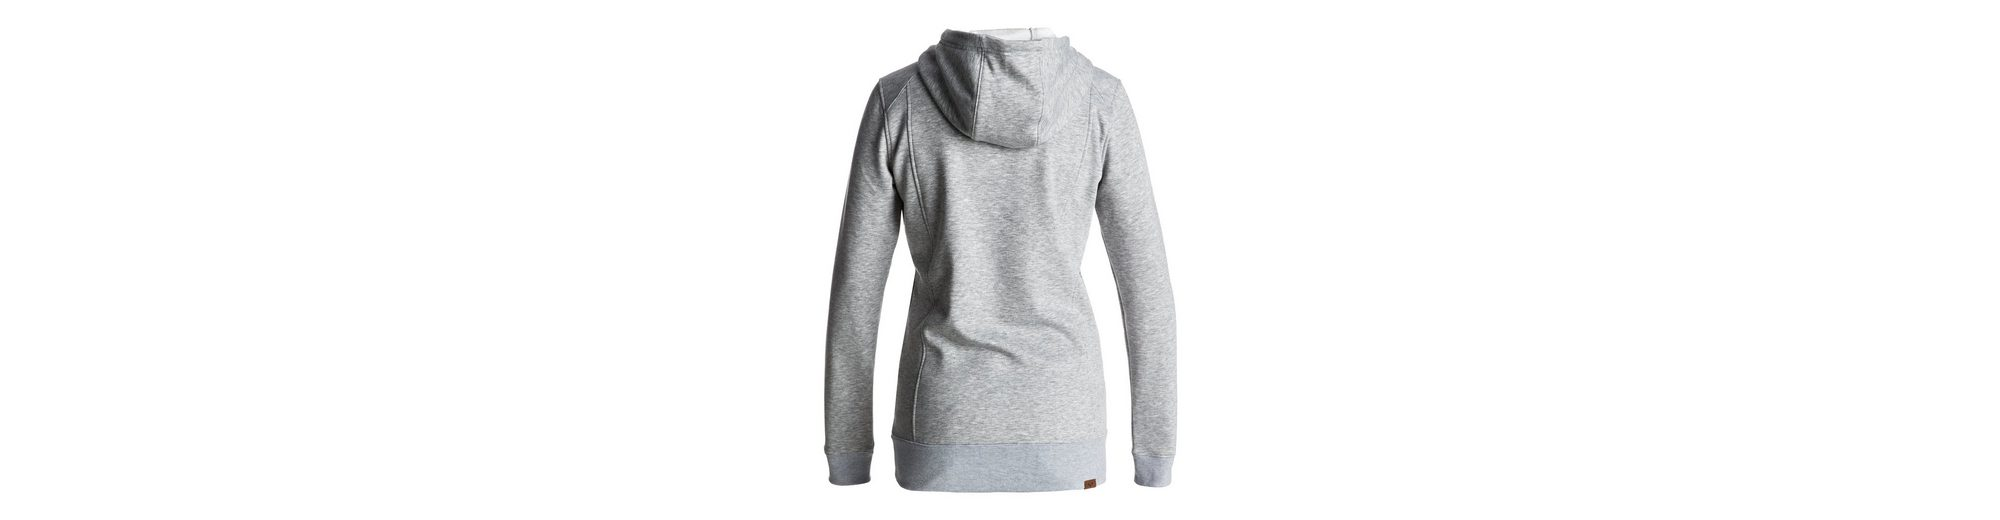 Roxy Funktioneller Hoodie Liberty Steckdose Mit Paypal Um XZIIQh